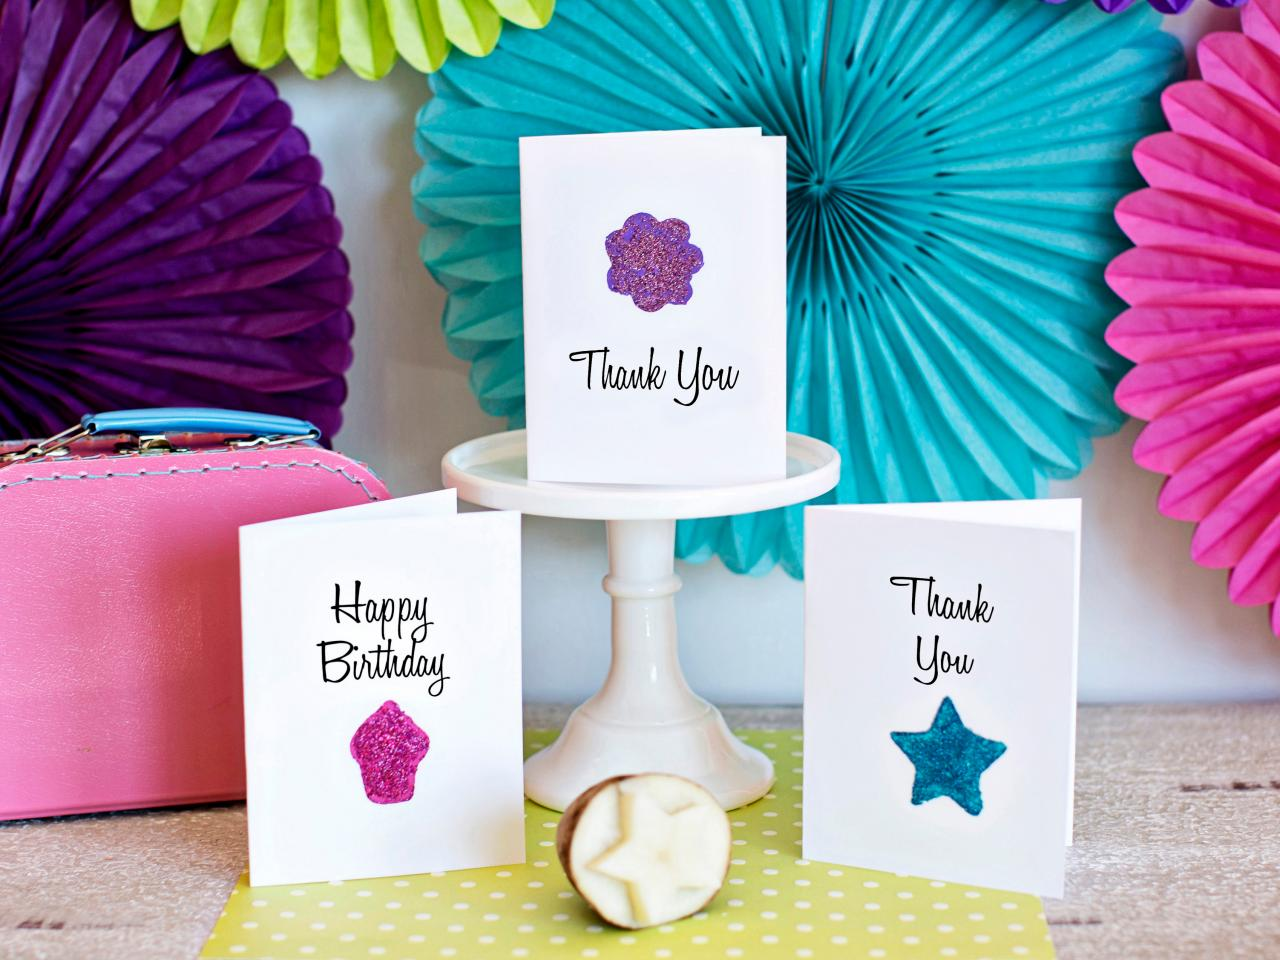 How to Use a Potato to Make Greeting Cards | how-tos